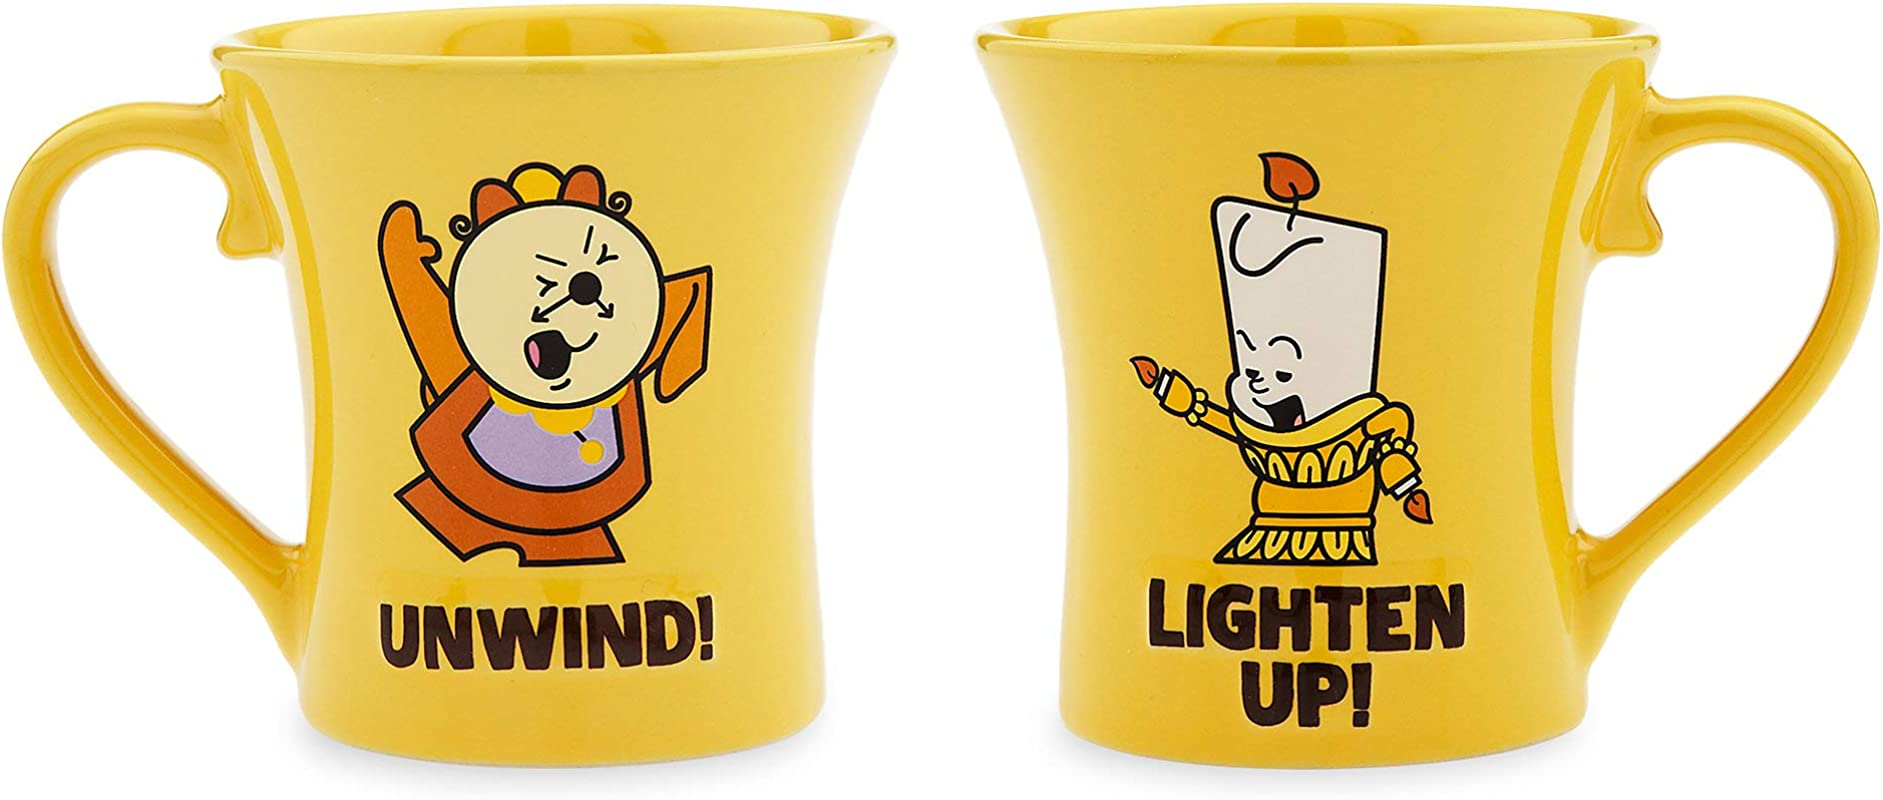 Disney Cogsworth And Lumiere Mug Set Beauty And The Beast